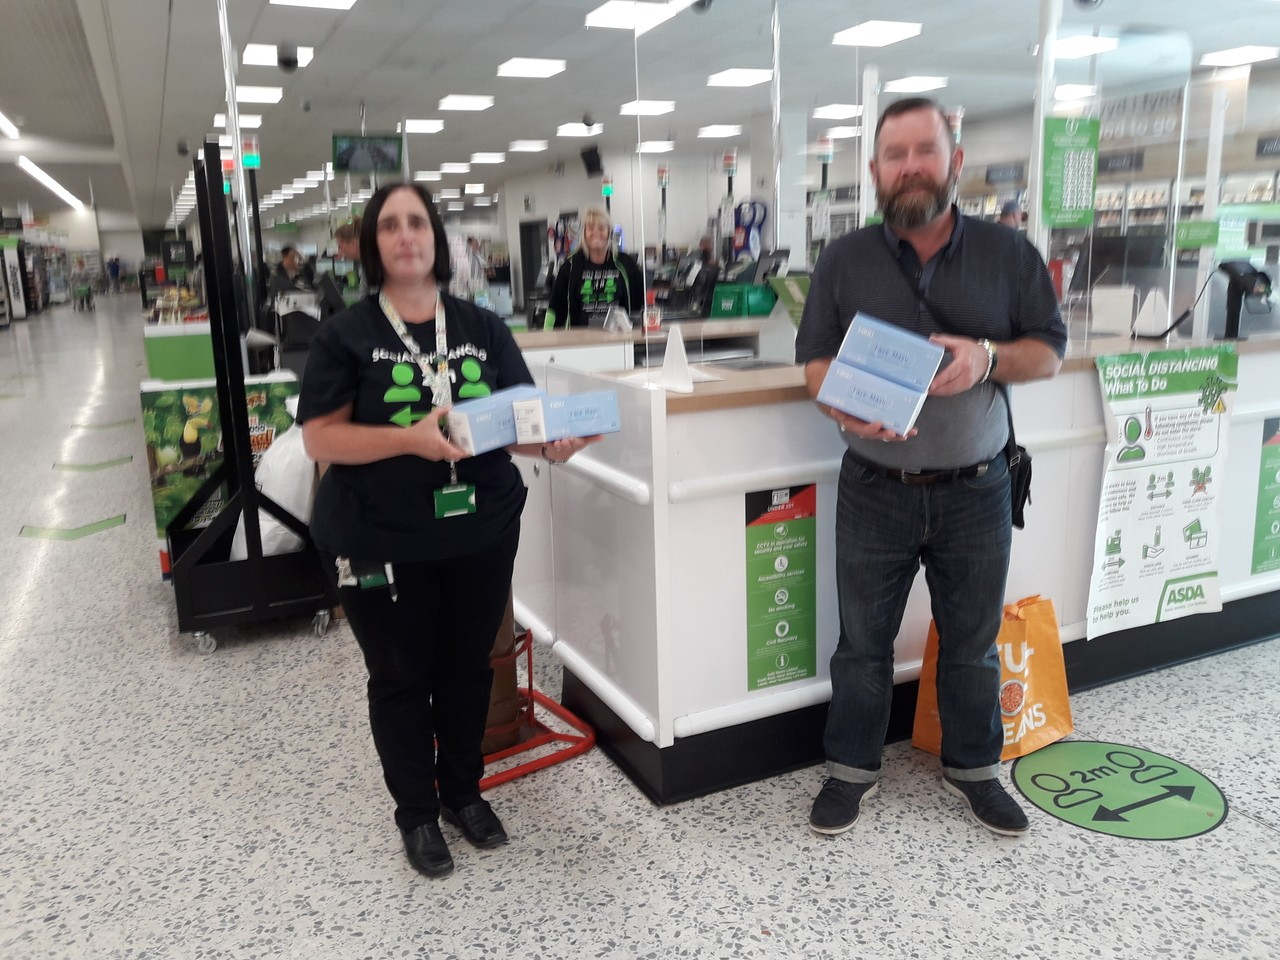 Donation of face masks | Asda Newport